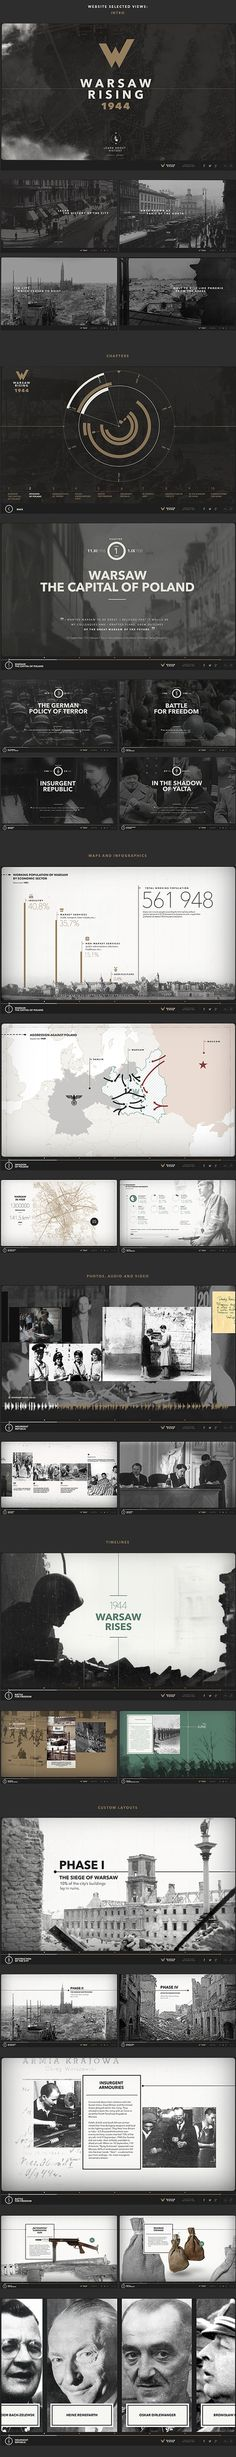 Warsaw Rising on Behance #web design #layout